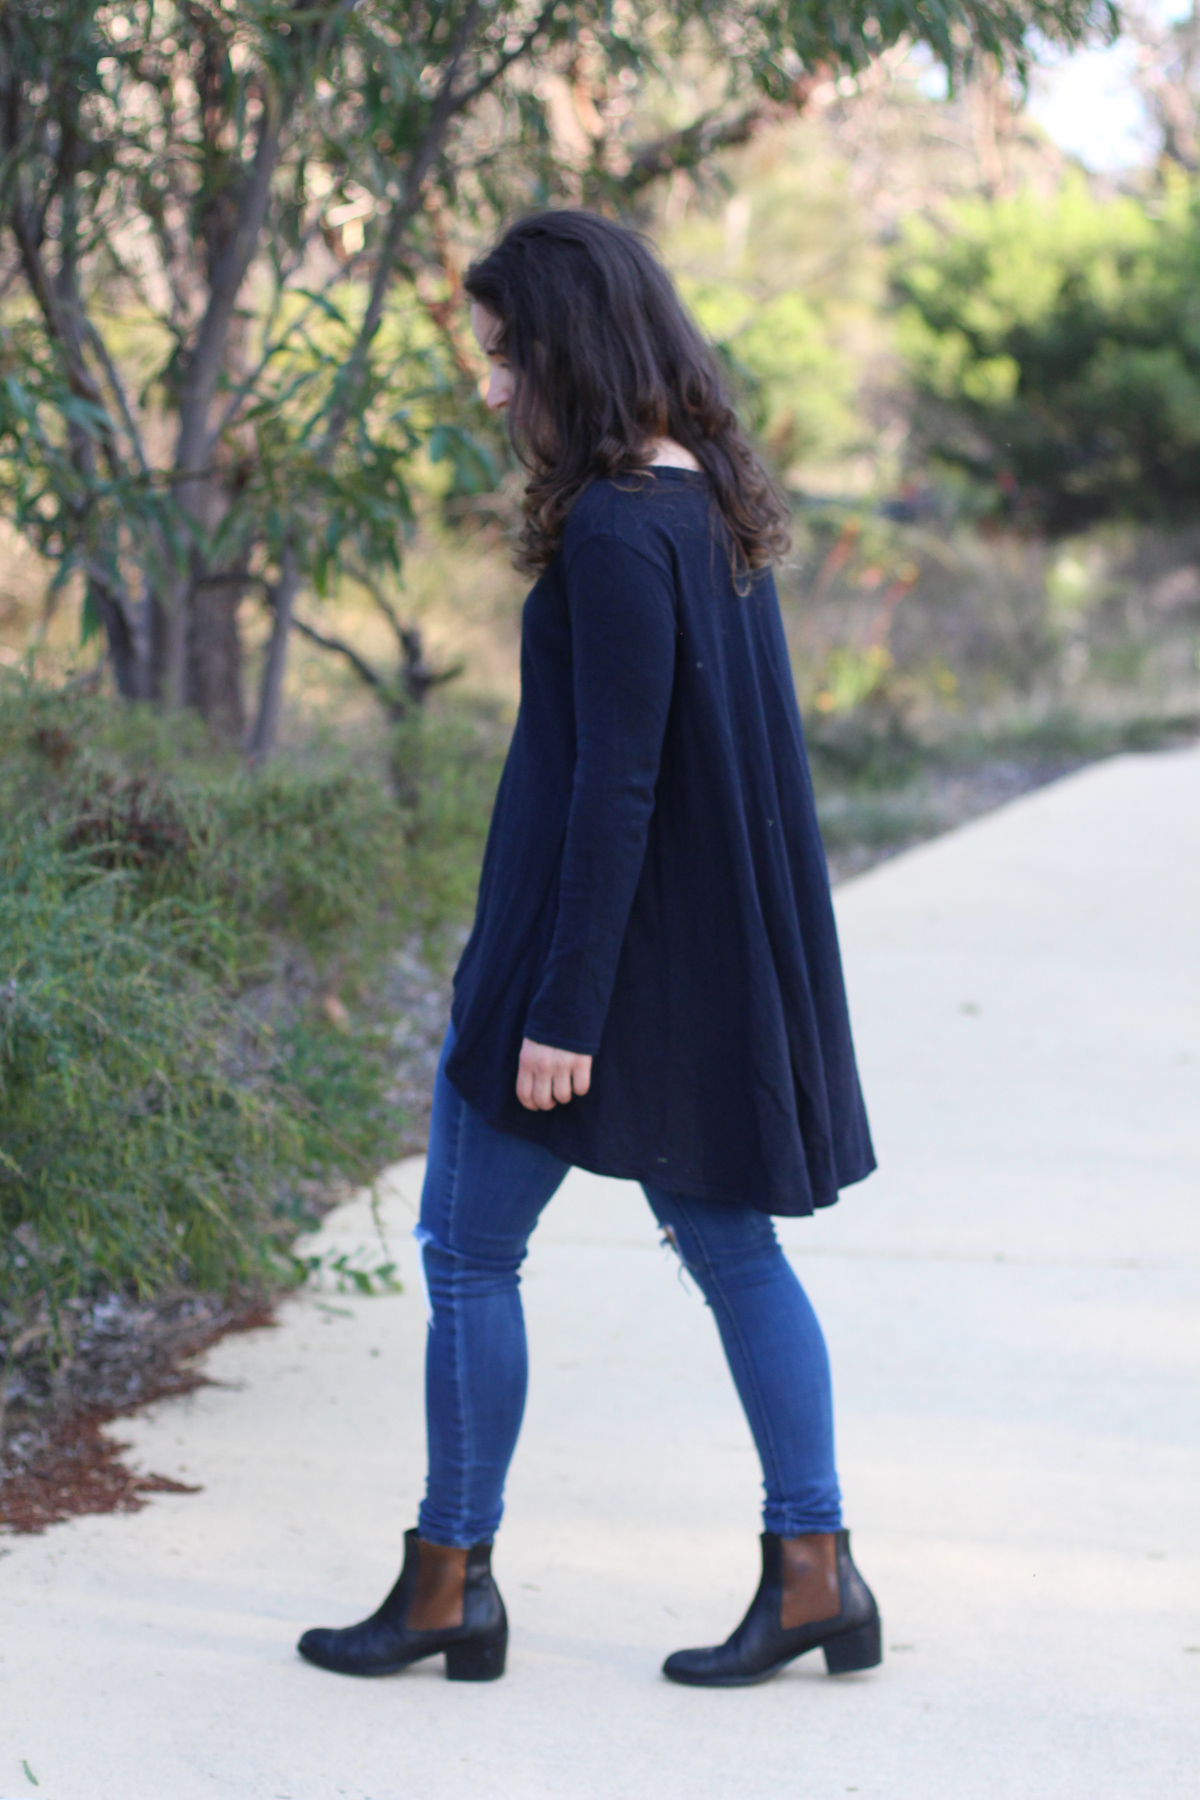 10 most worn makes in 10 years of blogging // Megan Nielsen swing back Briar tee